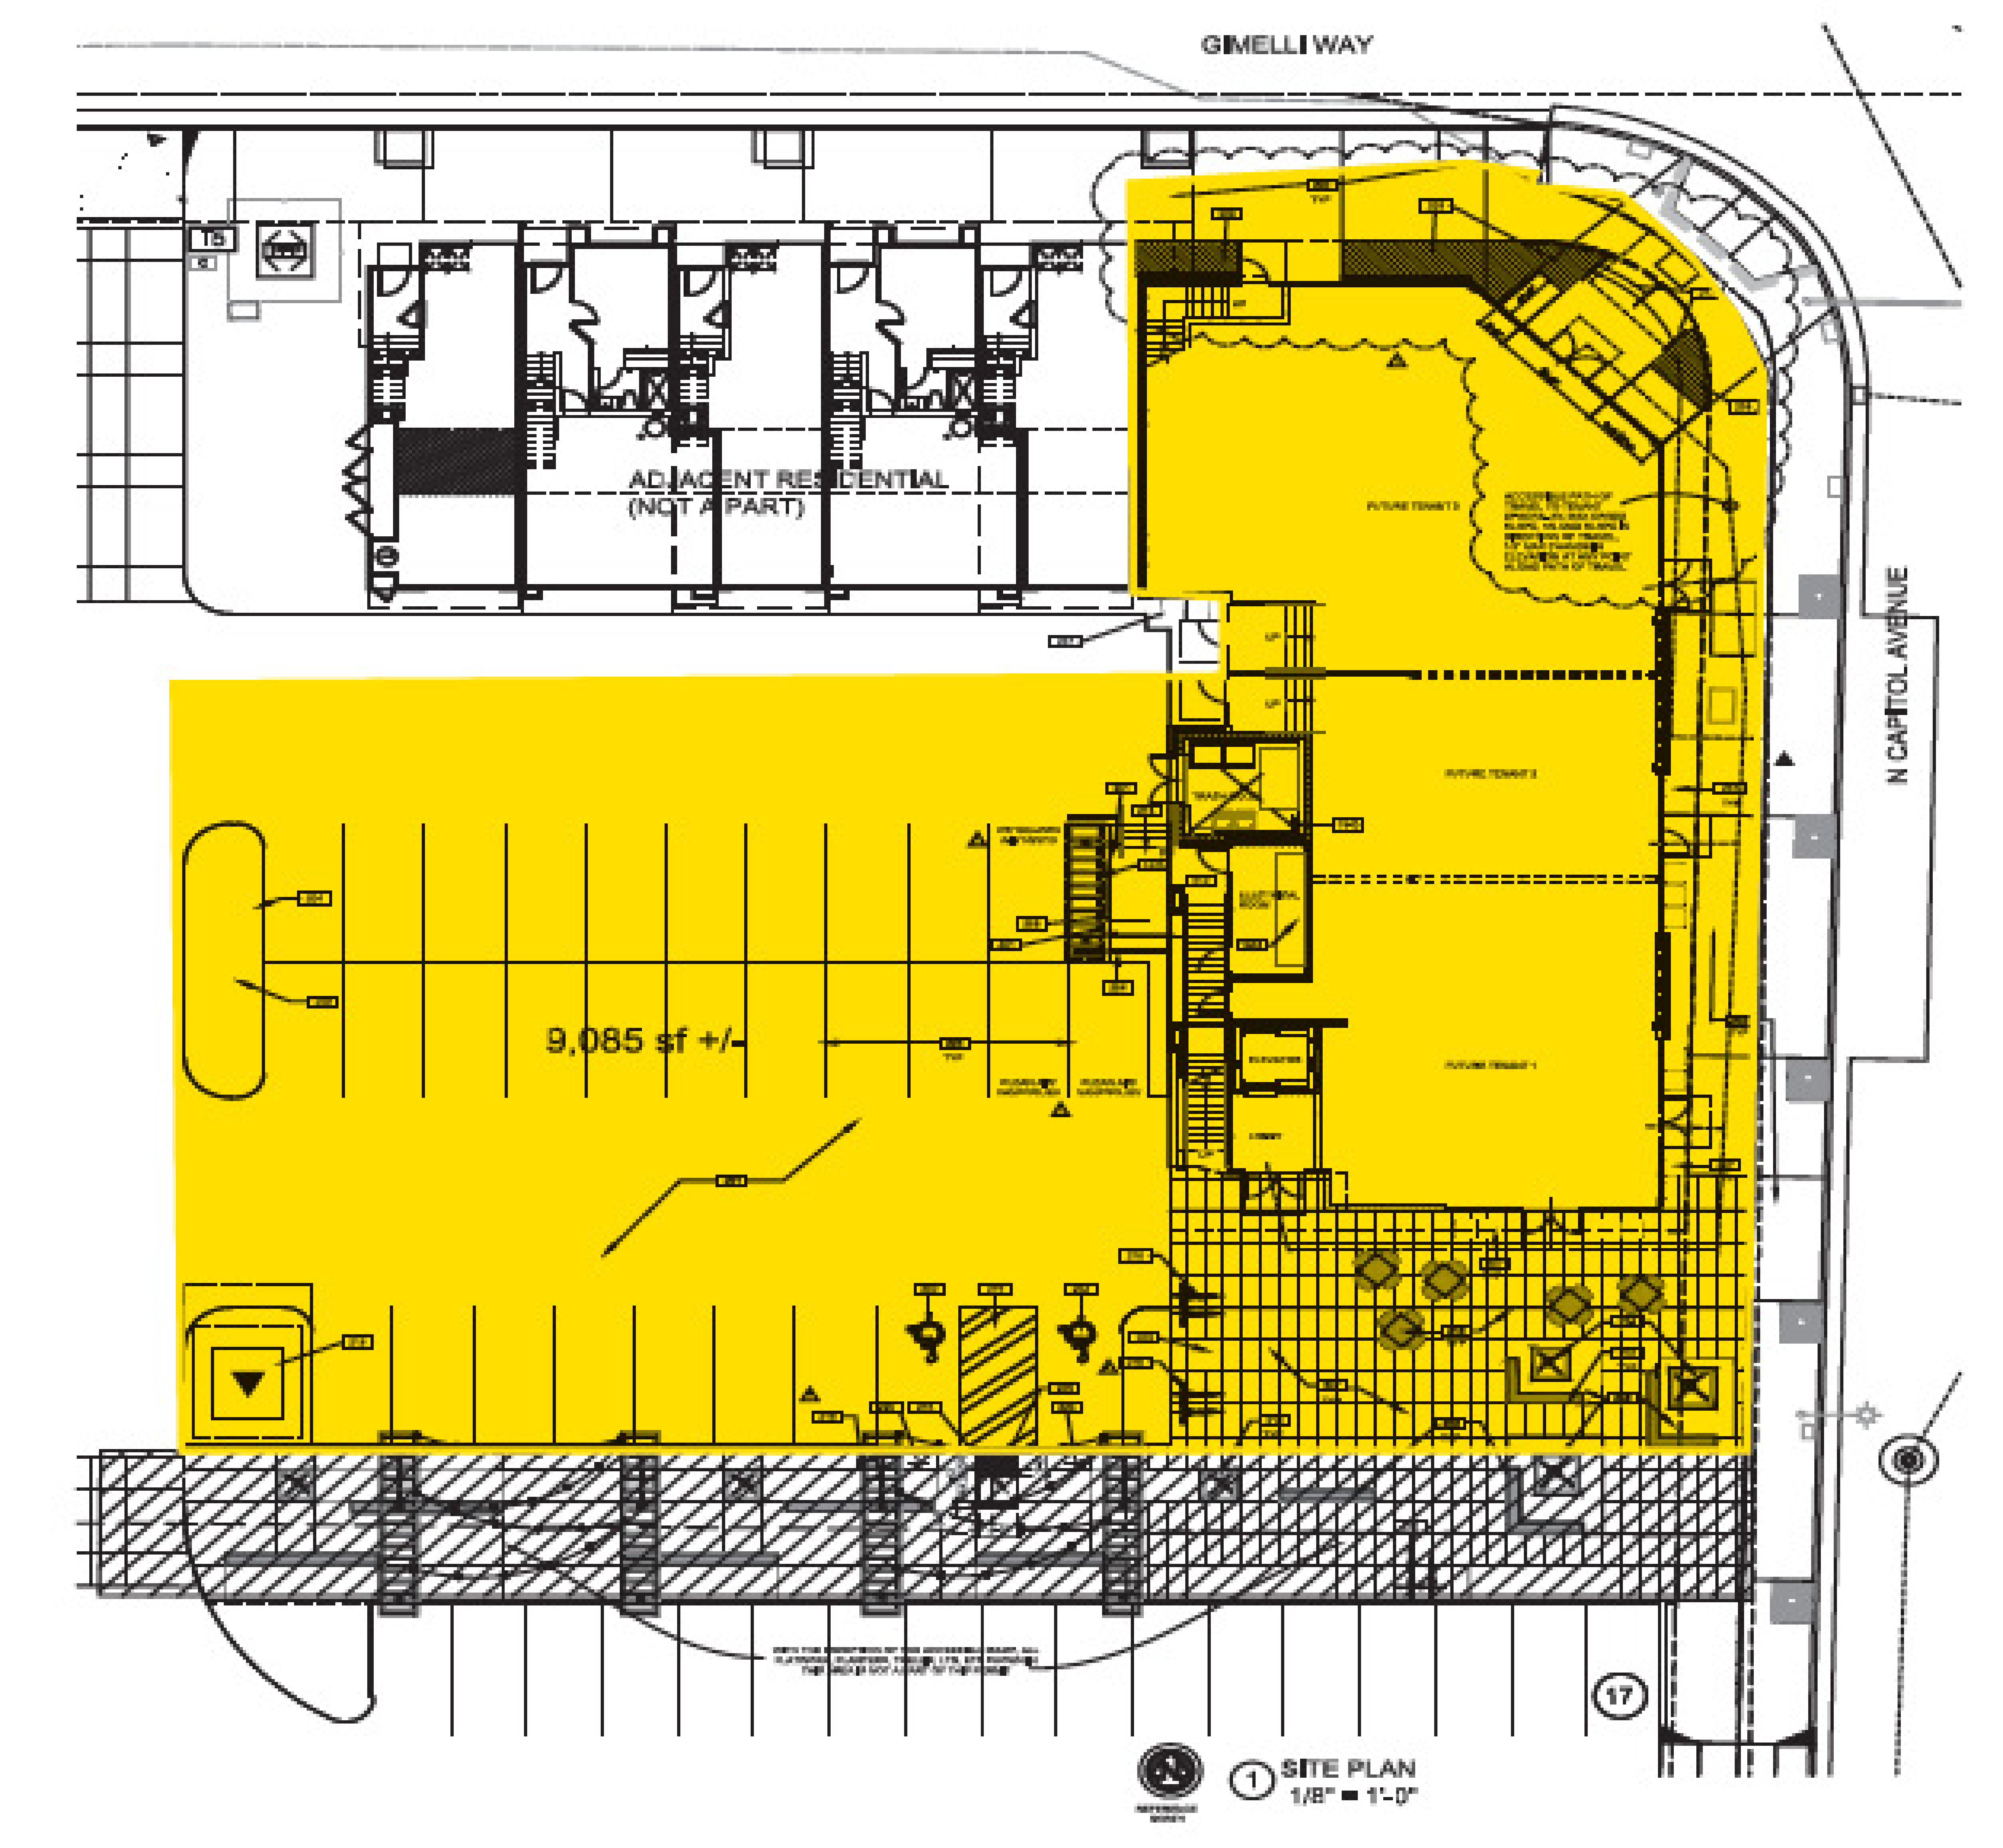 585 N. Capitol Ave: site plan